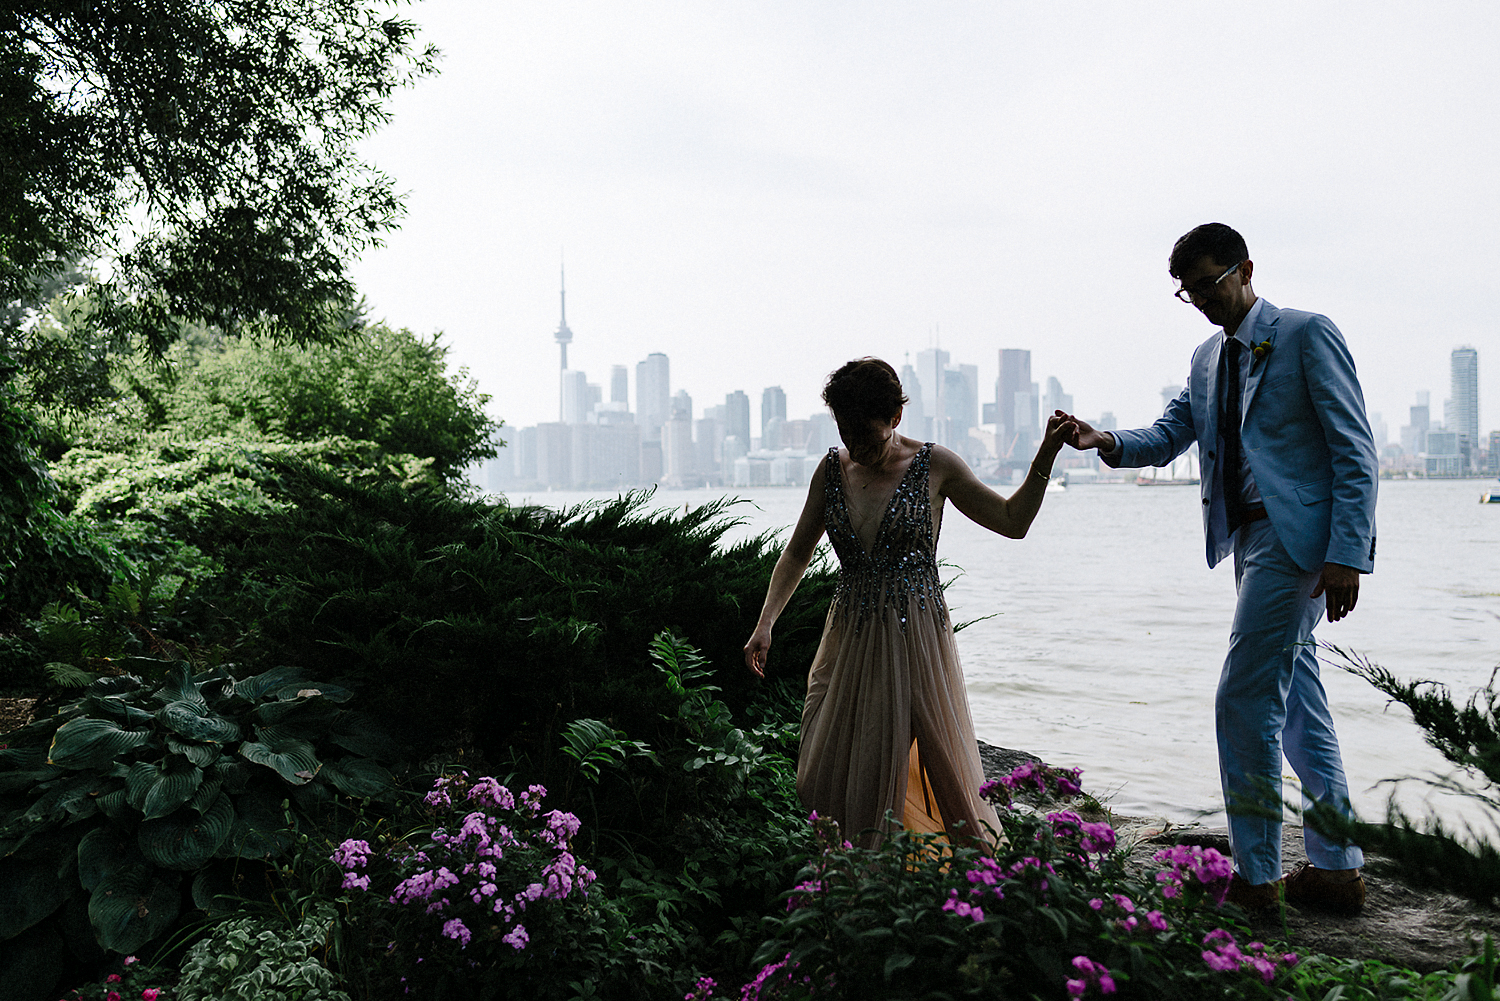 Bride-and-Groom-Sharing-Quiet-moment-looking-at-sunset-over-toronto-skyline-toronto-wedding-photographers-Toronto-island-Cafe-clubhouse-wedding-boho-hip-cool-bride-and-groom-walking.jpg